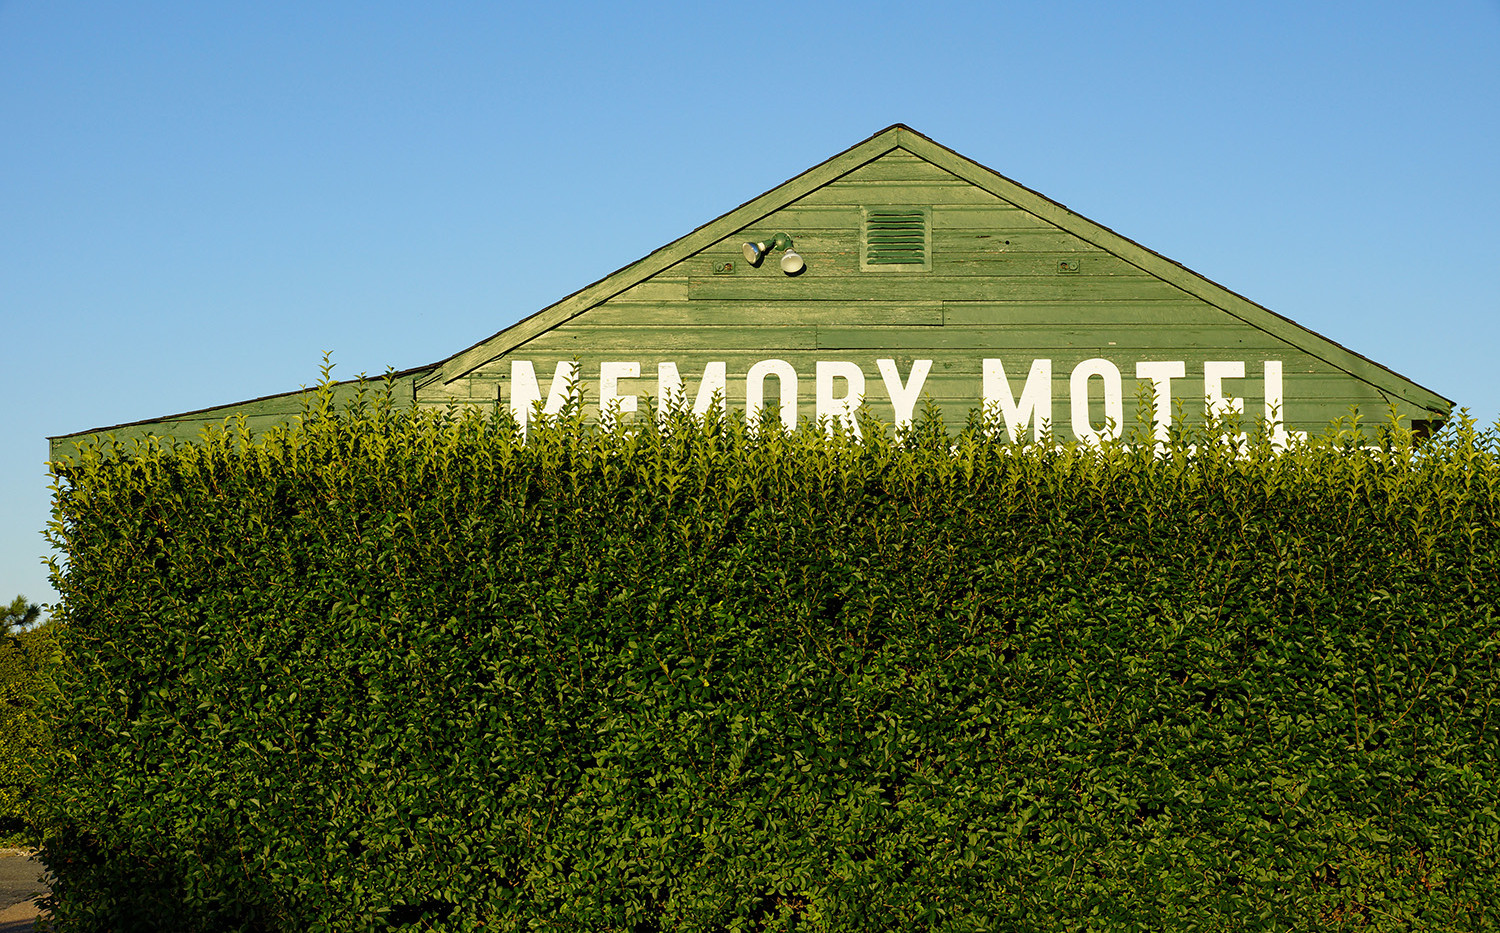 MEMORY MOTEL (color version)